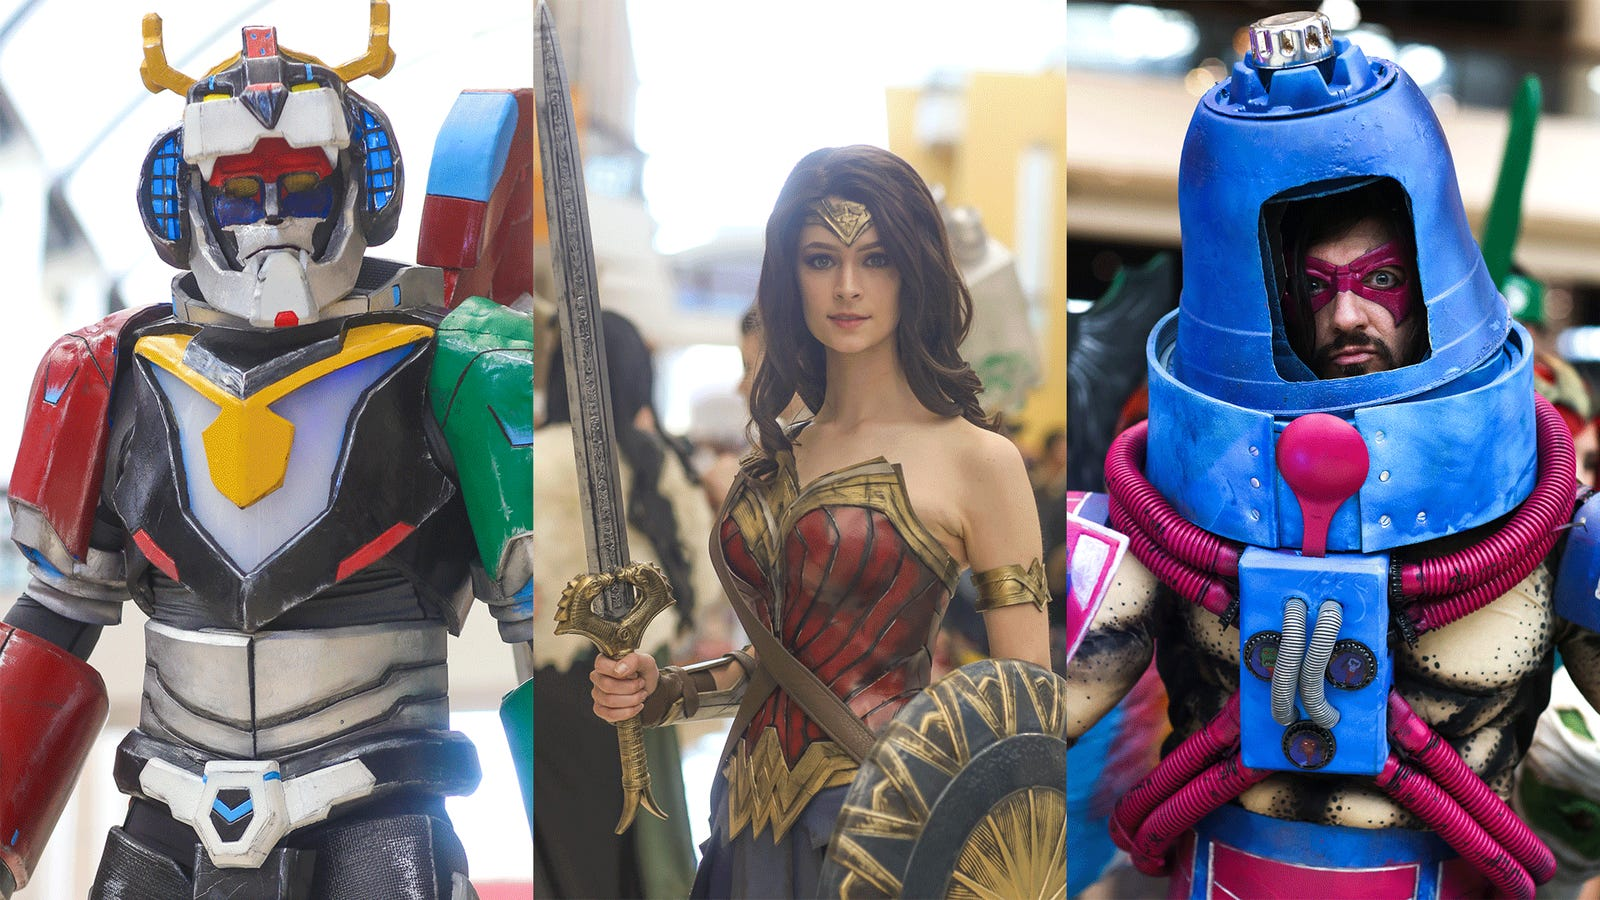 Our Favorite Cosplay From The 2019 Chicago Comic & Entertainment Expo